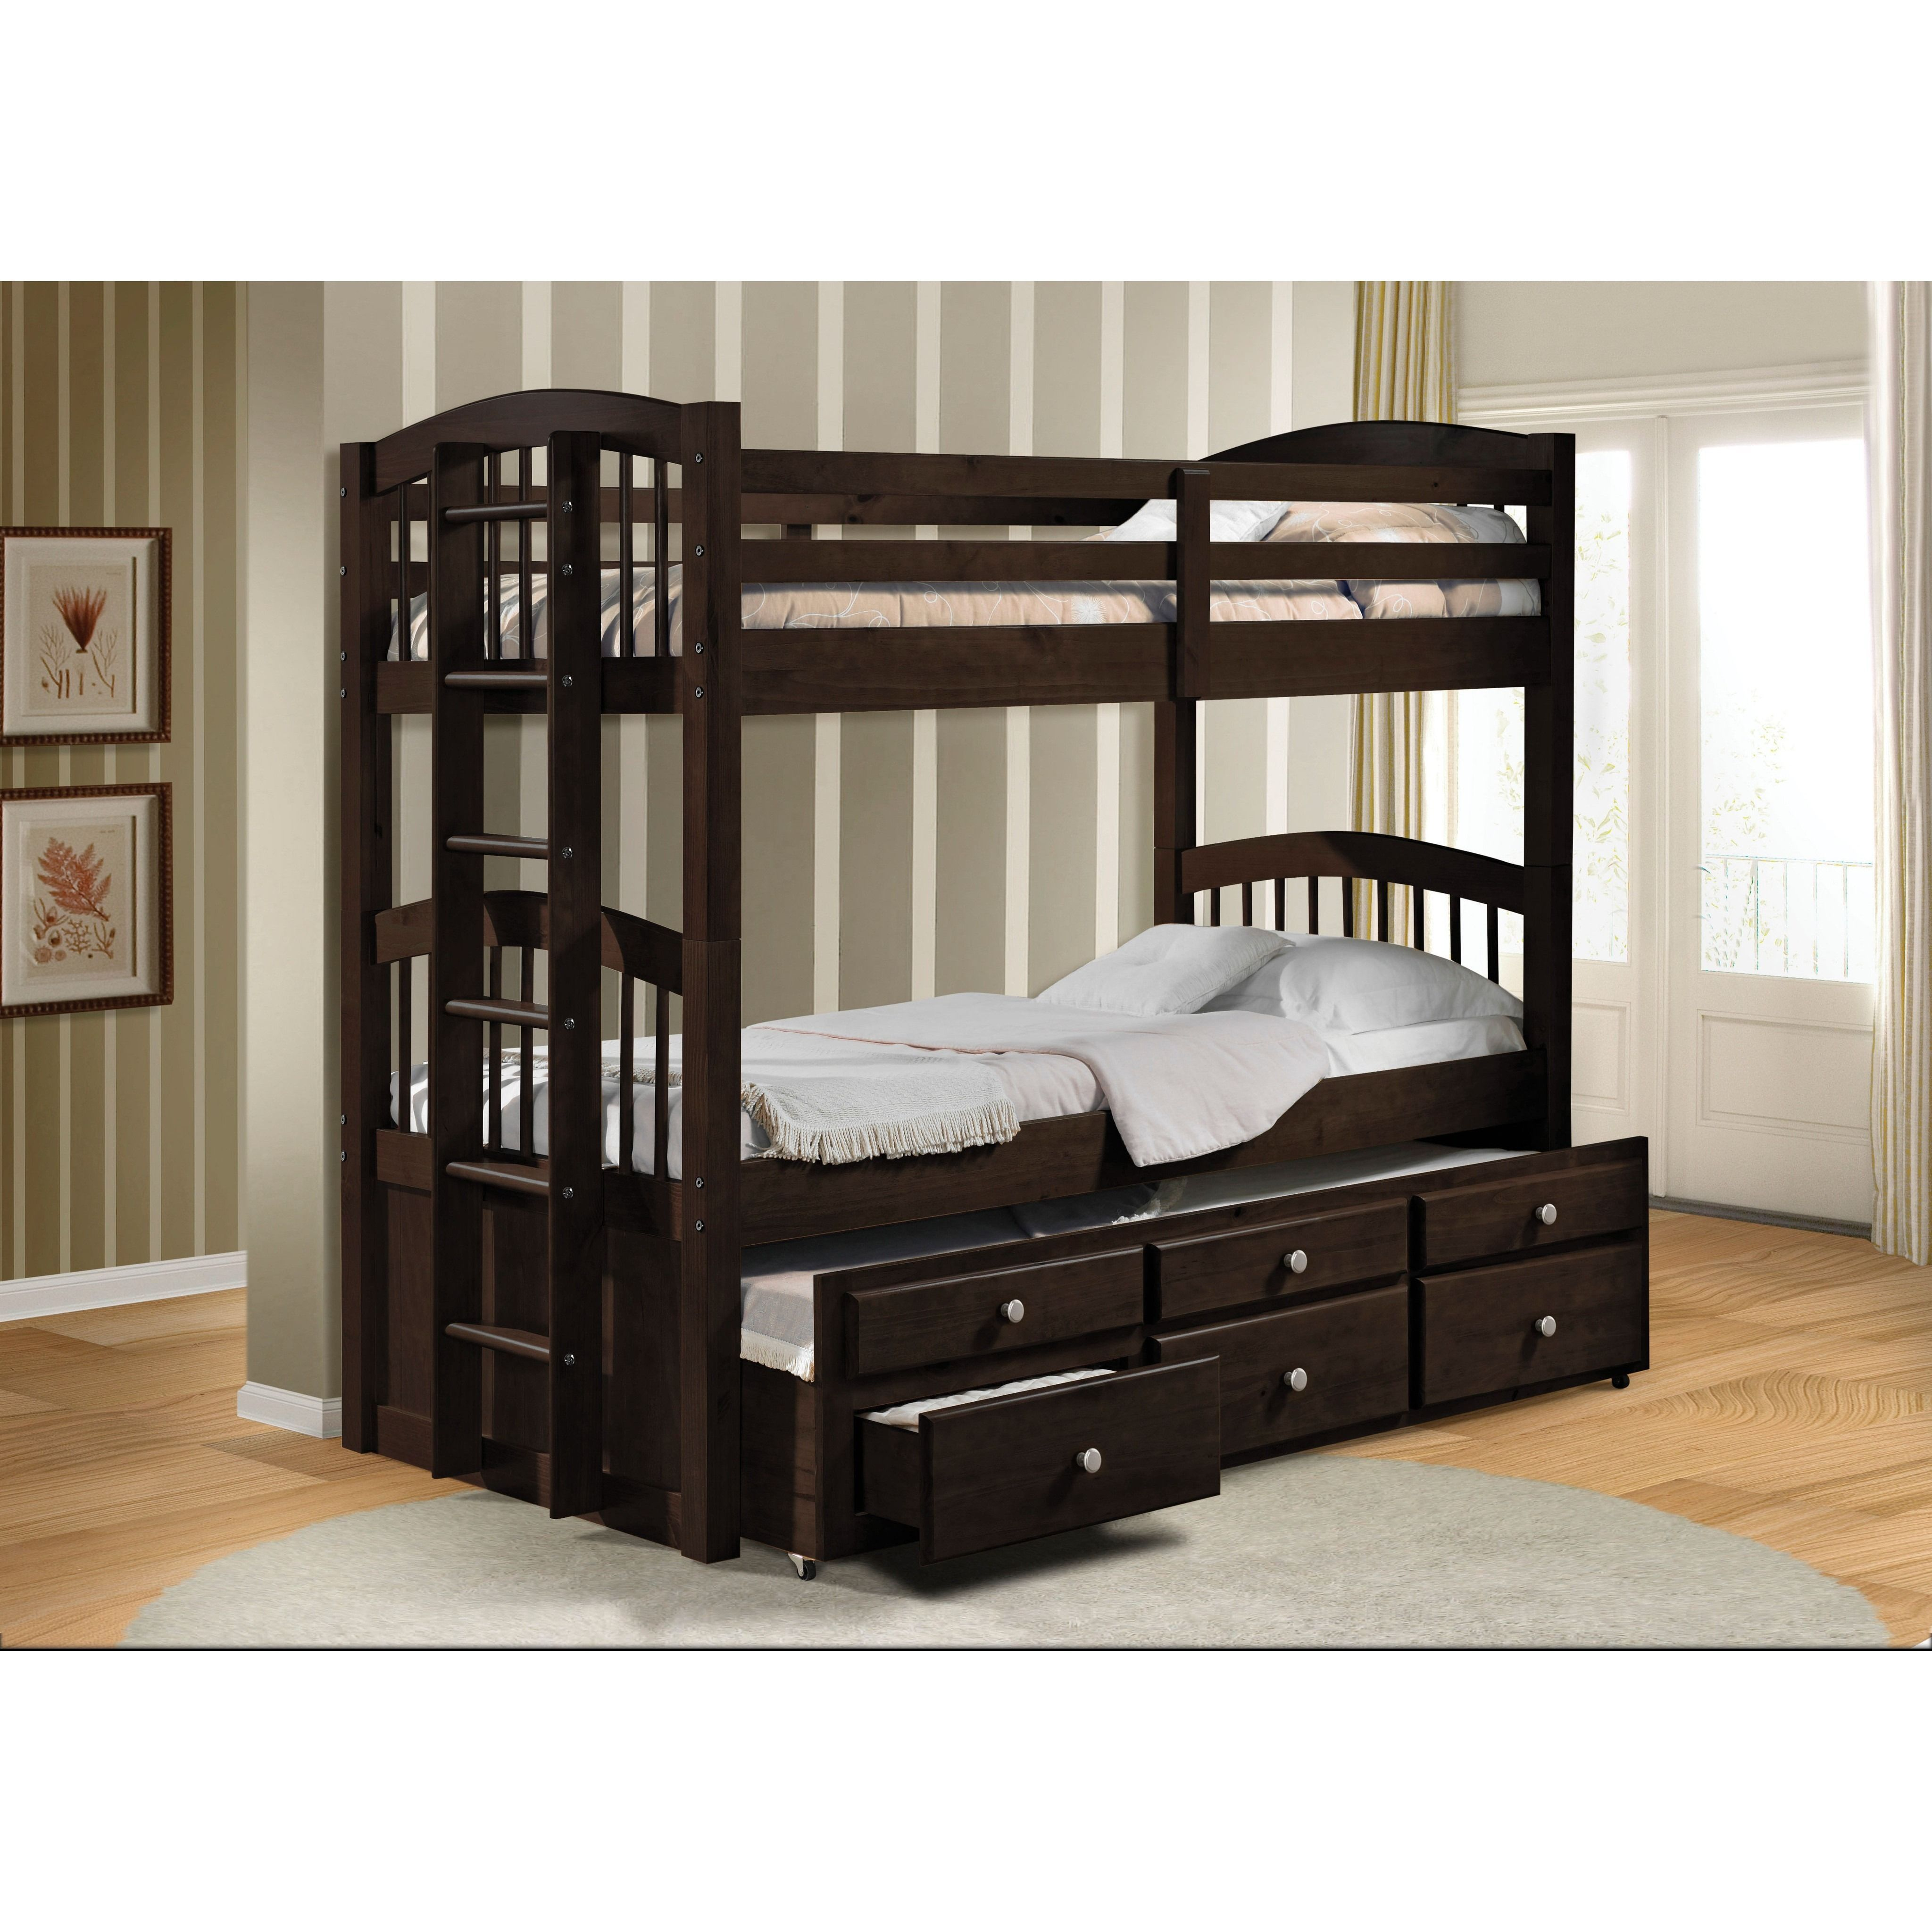 Micah Espresso Twin Over Twin Bunk Bed With Trundle And 3 Drawers Bunk Beds Twin Bunk Beds Bunk Bed With Trundle